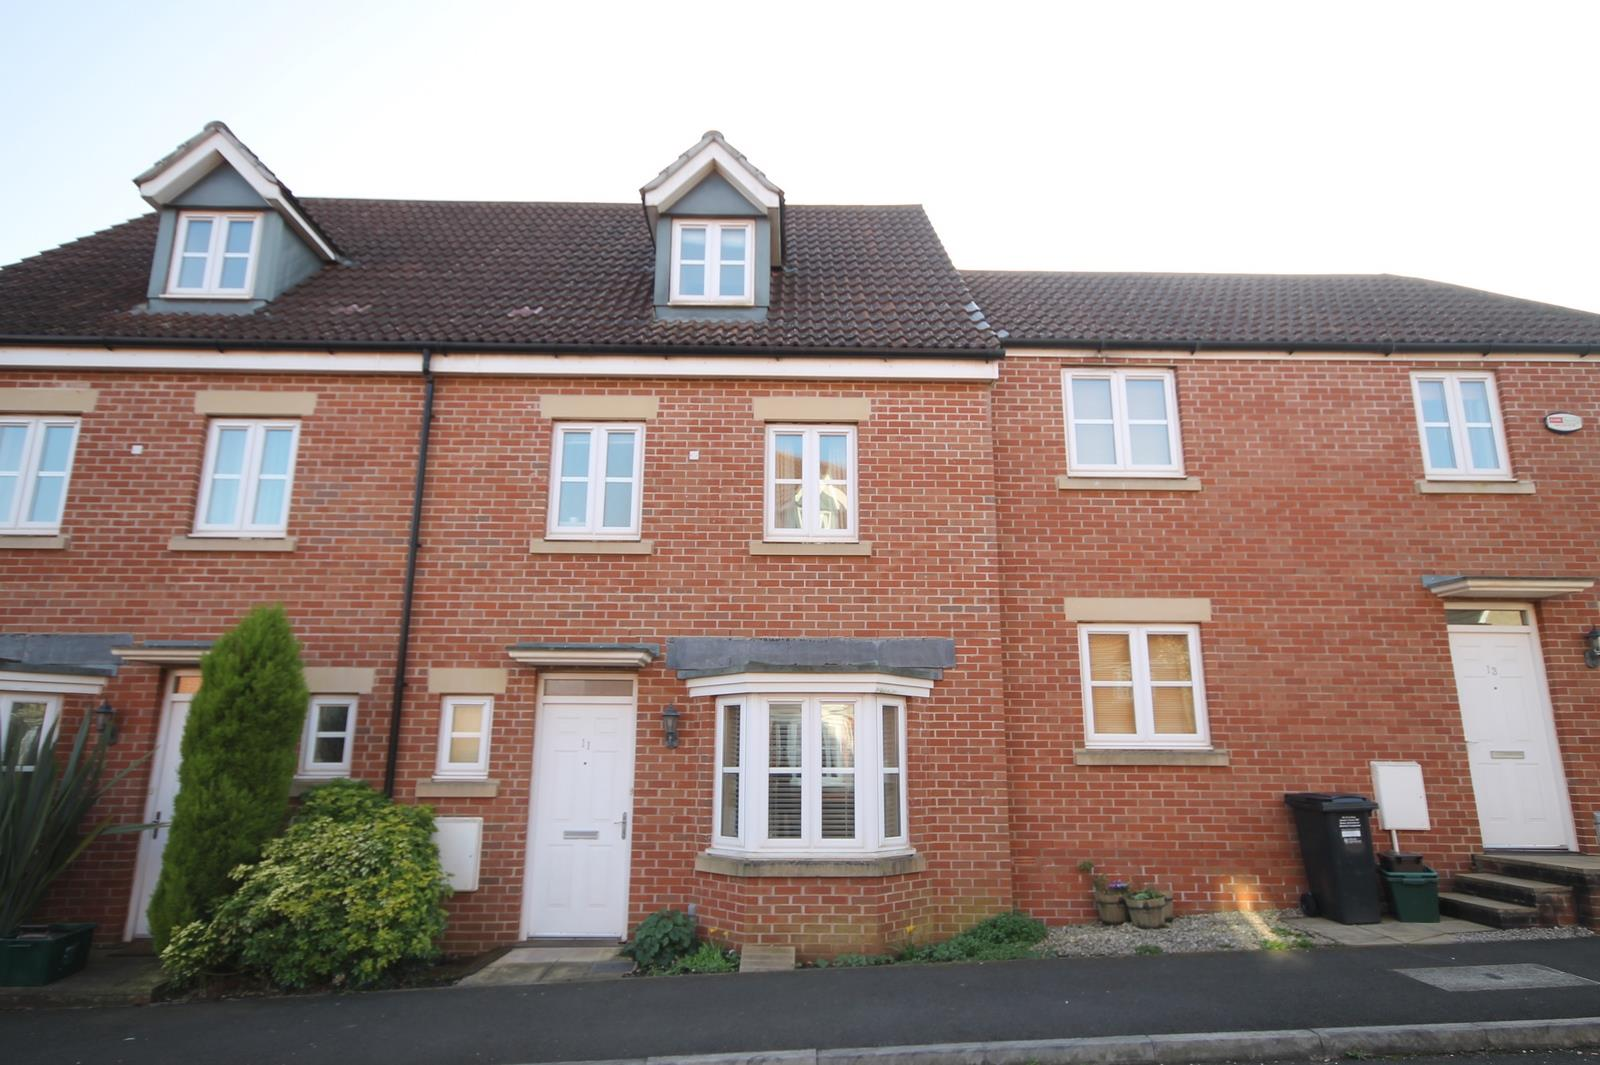 4 bed house to rent in Blackcurrant Drive, Bristol - Property Image 1